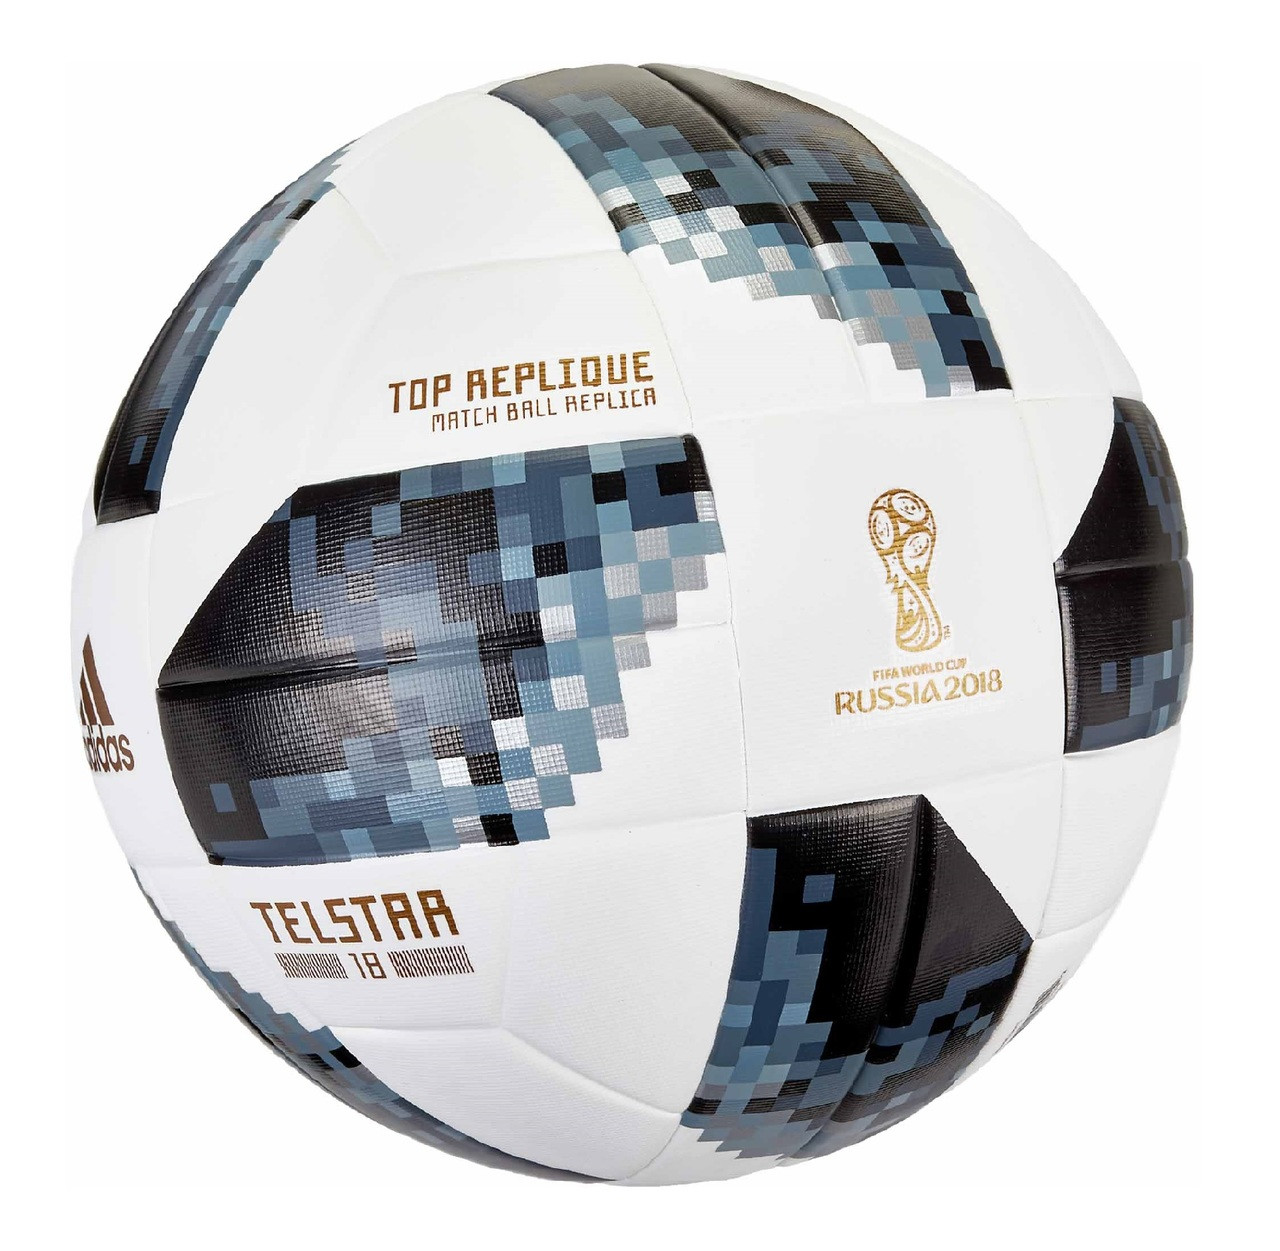 8adf79741 Adidas Fifa World Cup 2018 Replica Match Ball - White/Black (52818) - ohp  soccer